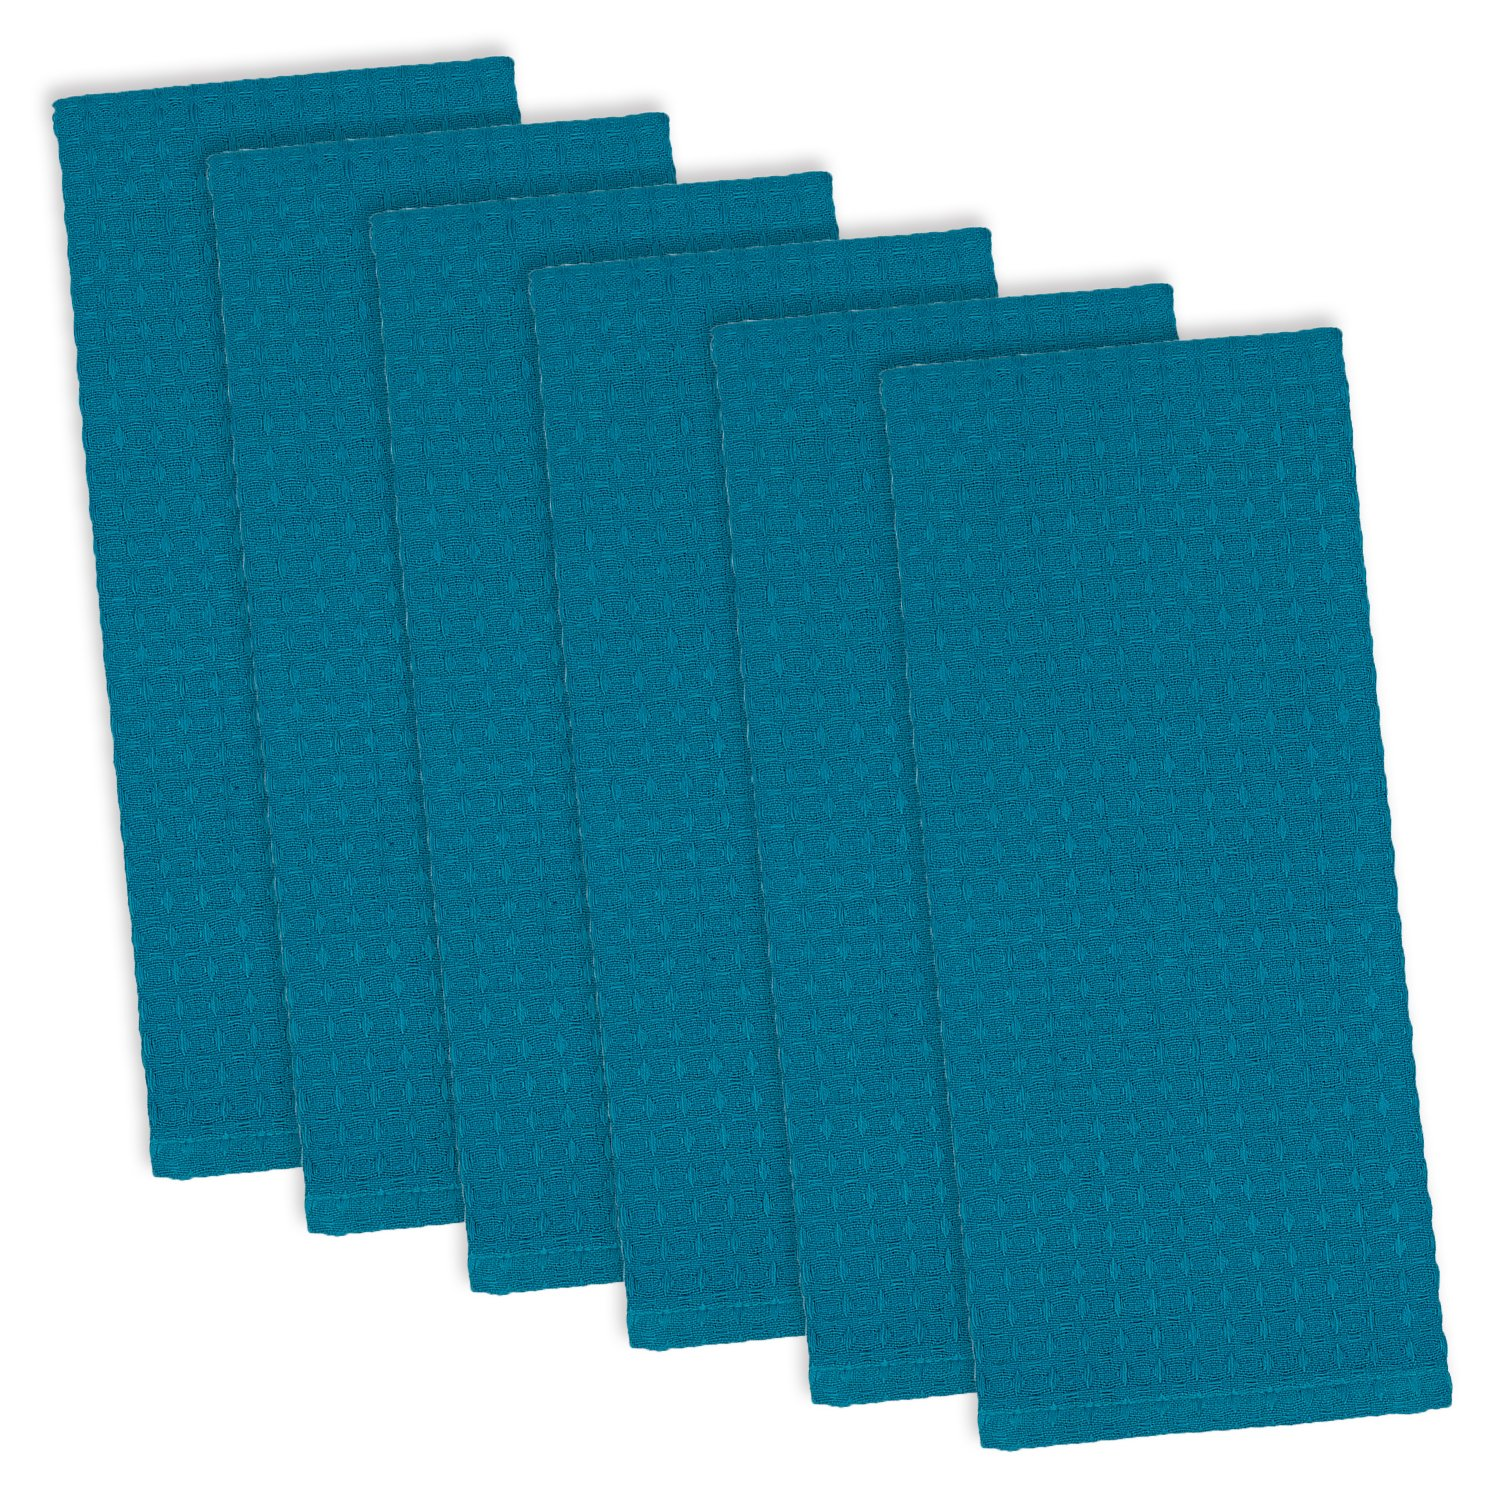 DII 100% Cotton, Ultra Absorbent, Drying & Cleaning, Everyday Kitchen Basic, Waffle Terry Kitchen Dish Towels, 18x28'' Set of 6 - Lake Blue